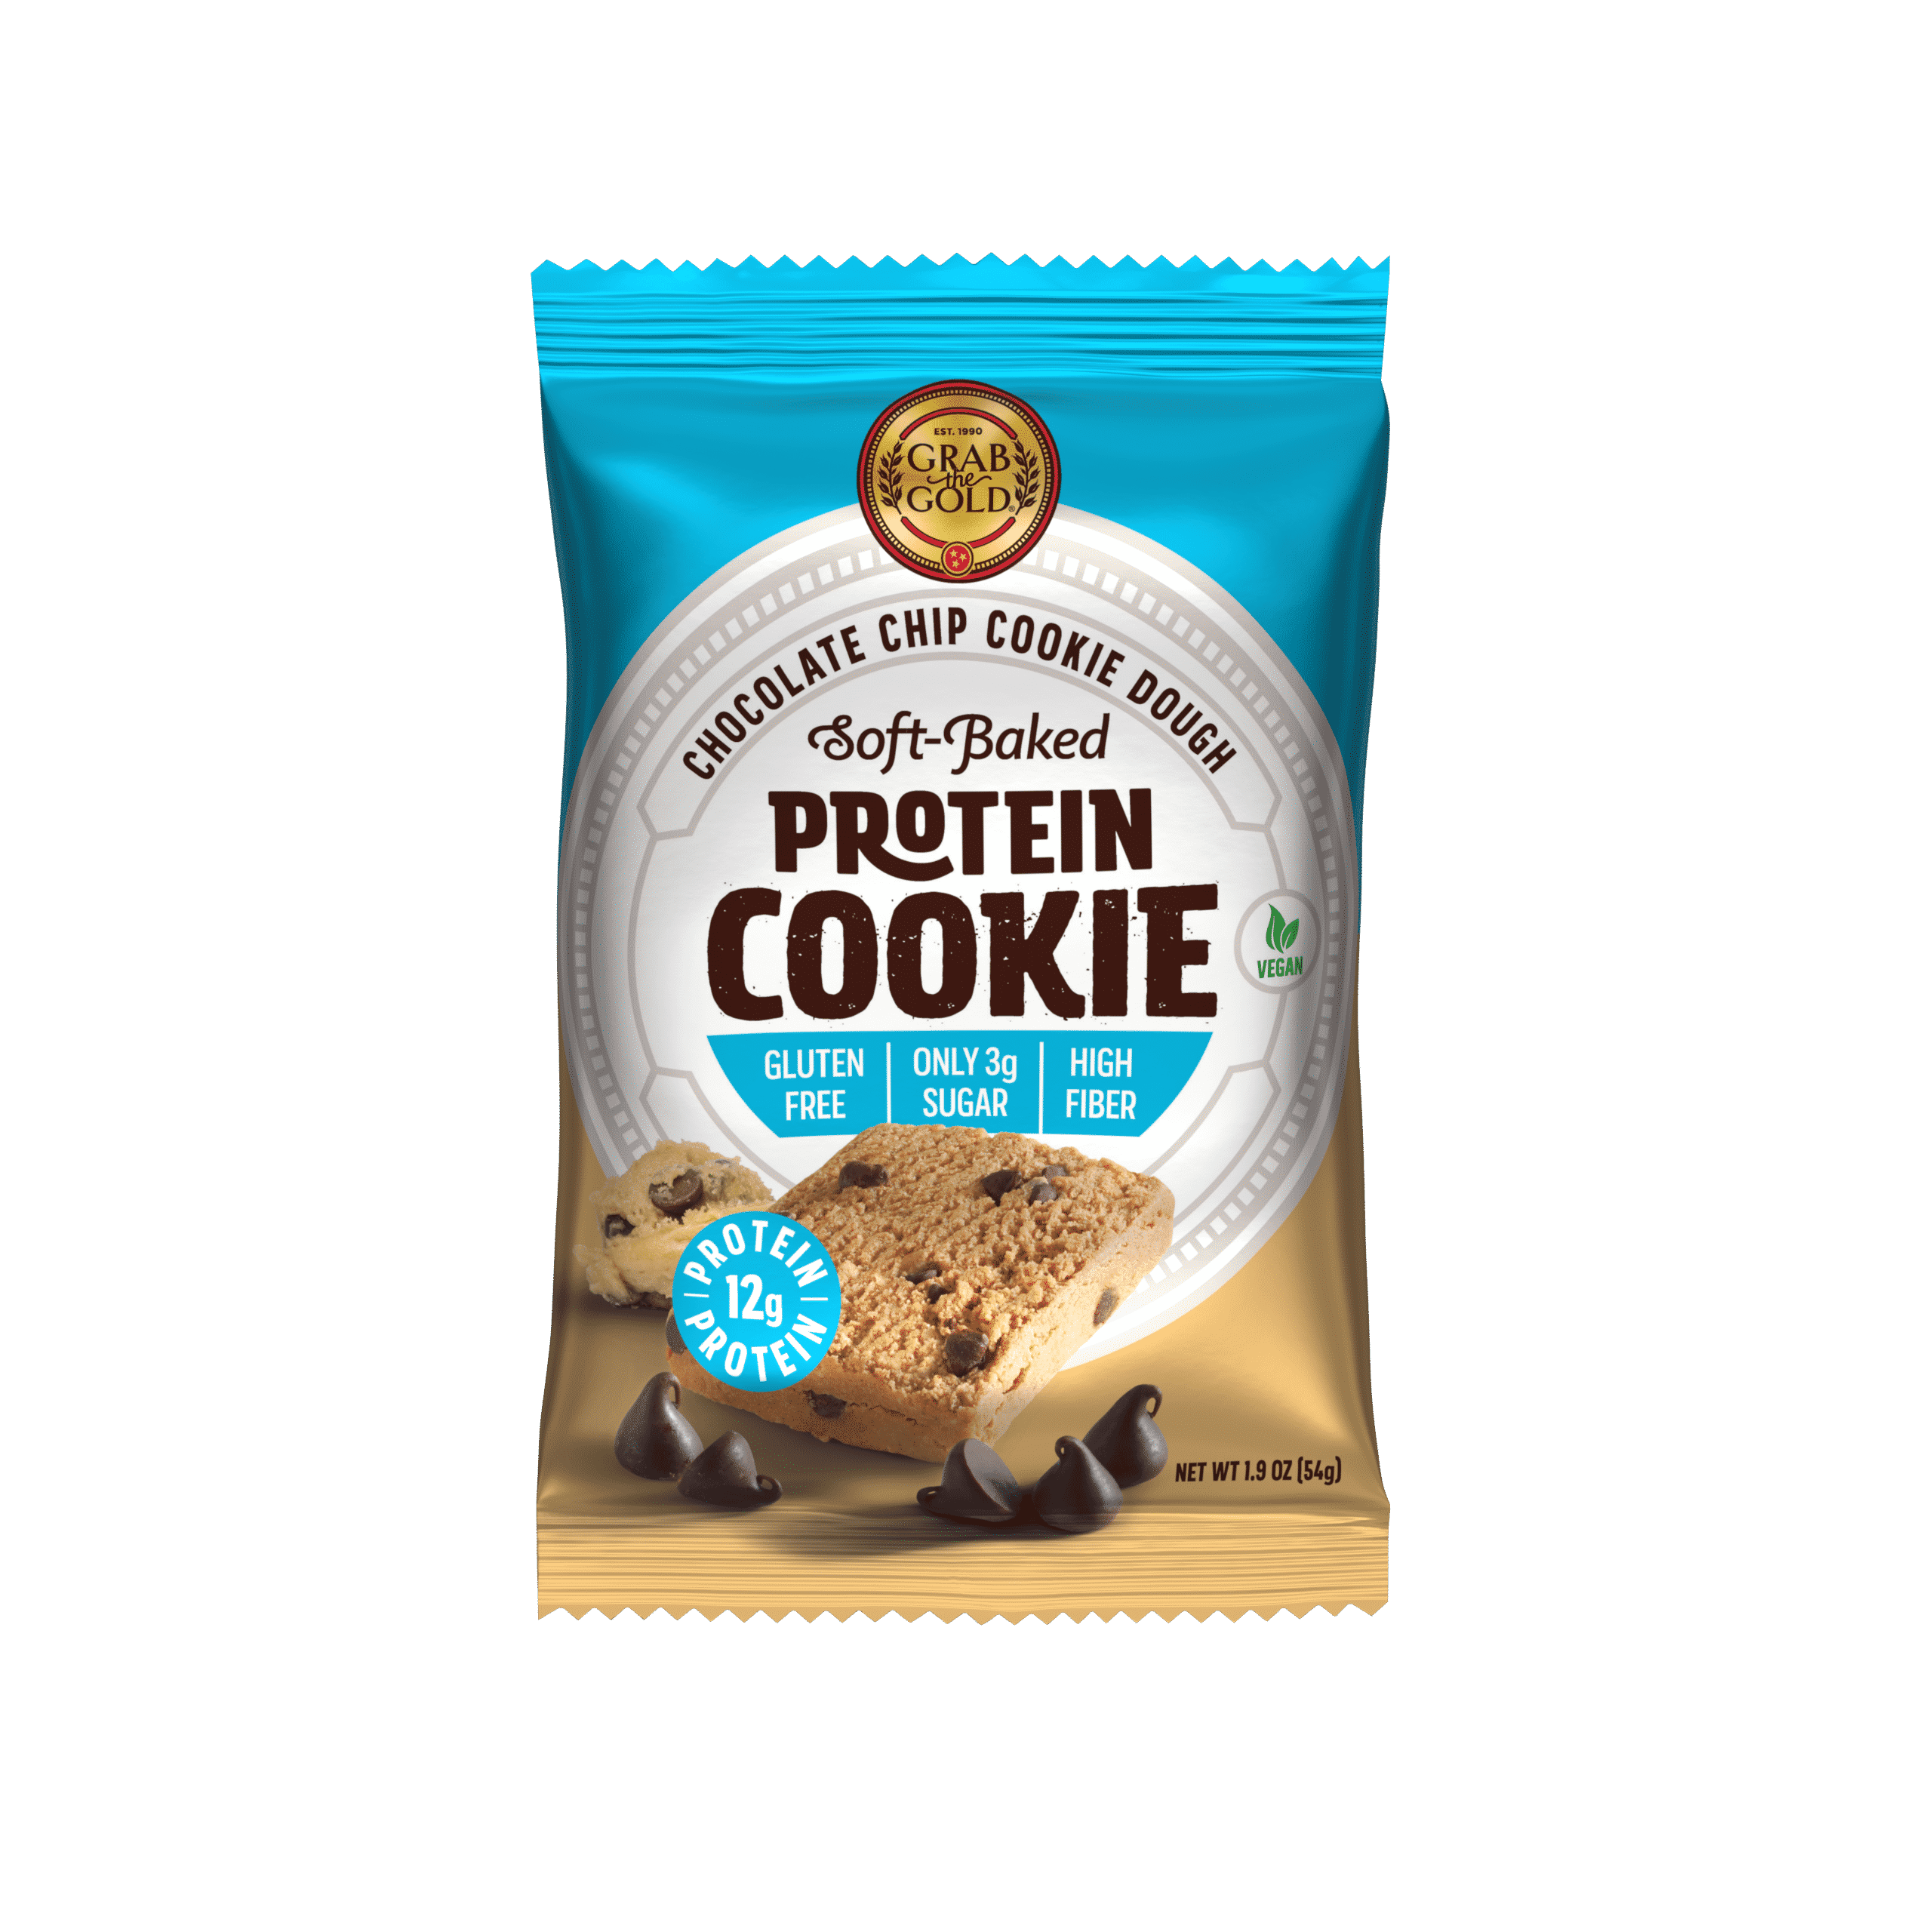 Grab The Gold Protein Cookie CCD Wrapper Rendered 07.20